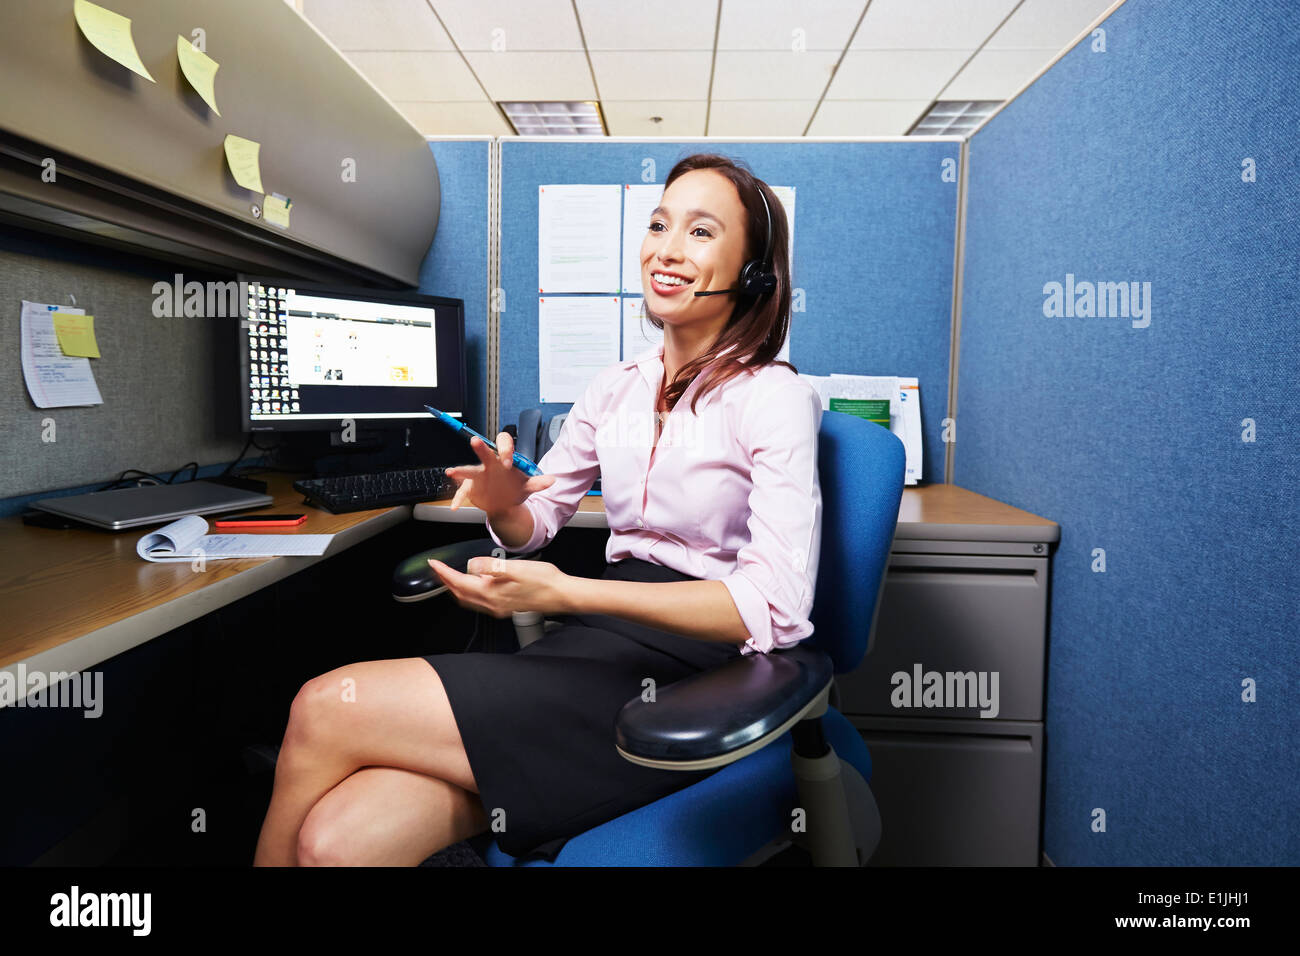 Young female office worker using Bluetooth headset in office Photo Stock